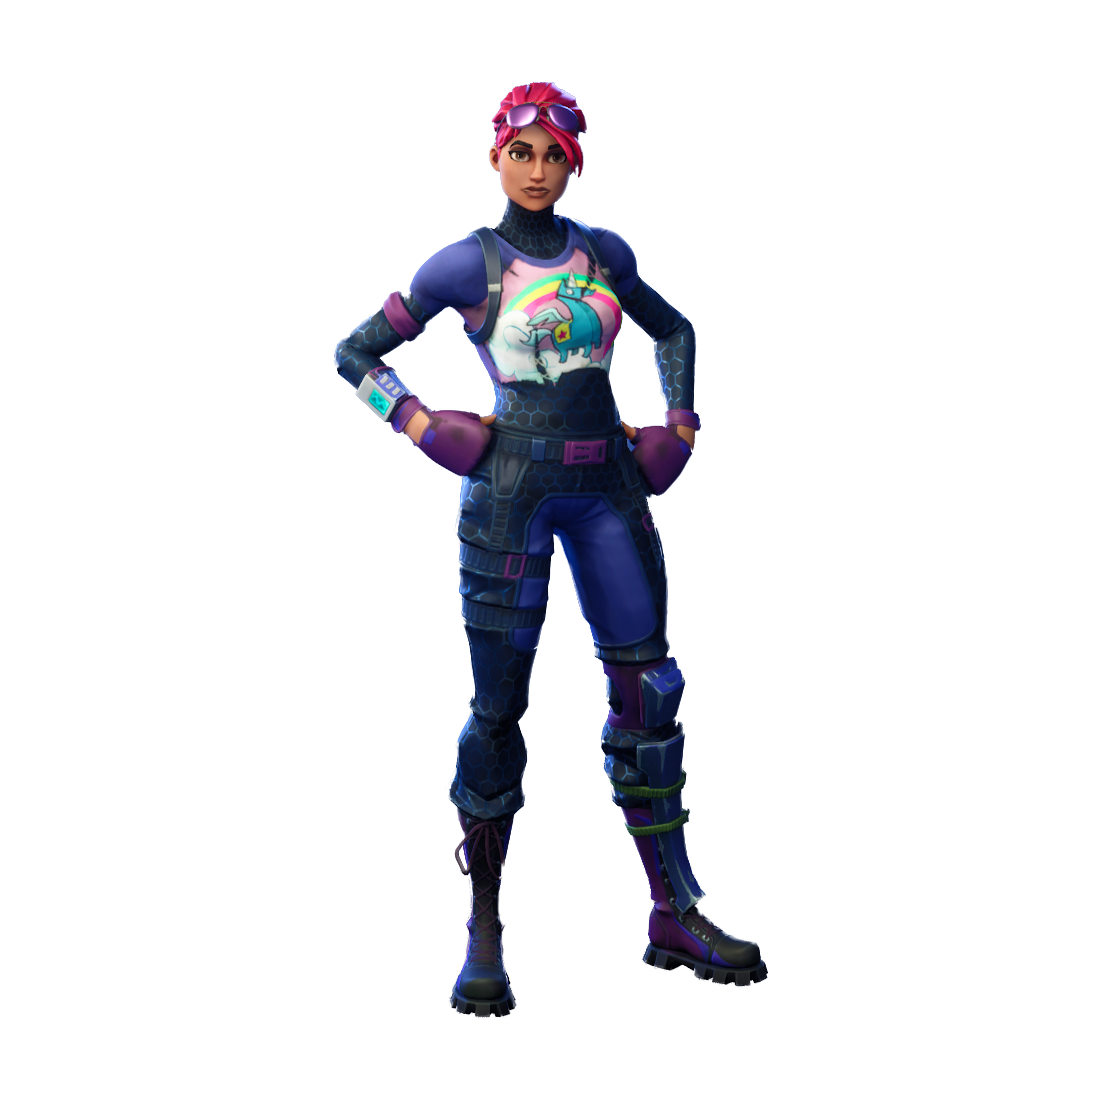 Download Fortnite Brite Bomber PNG Image for Free.